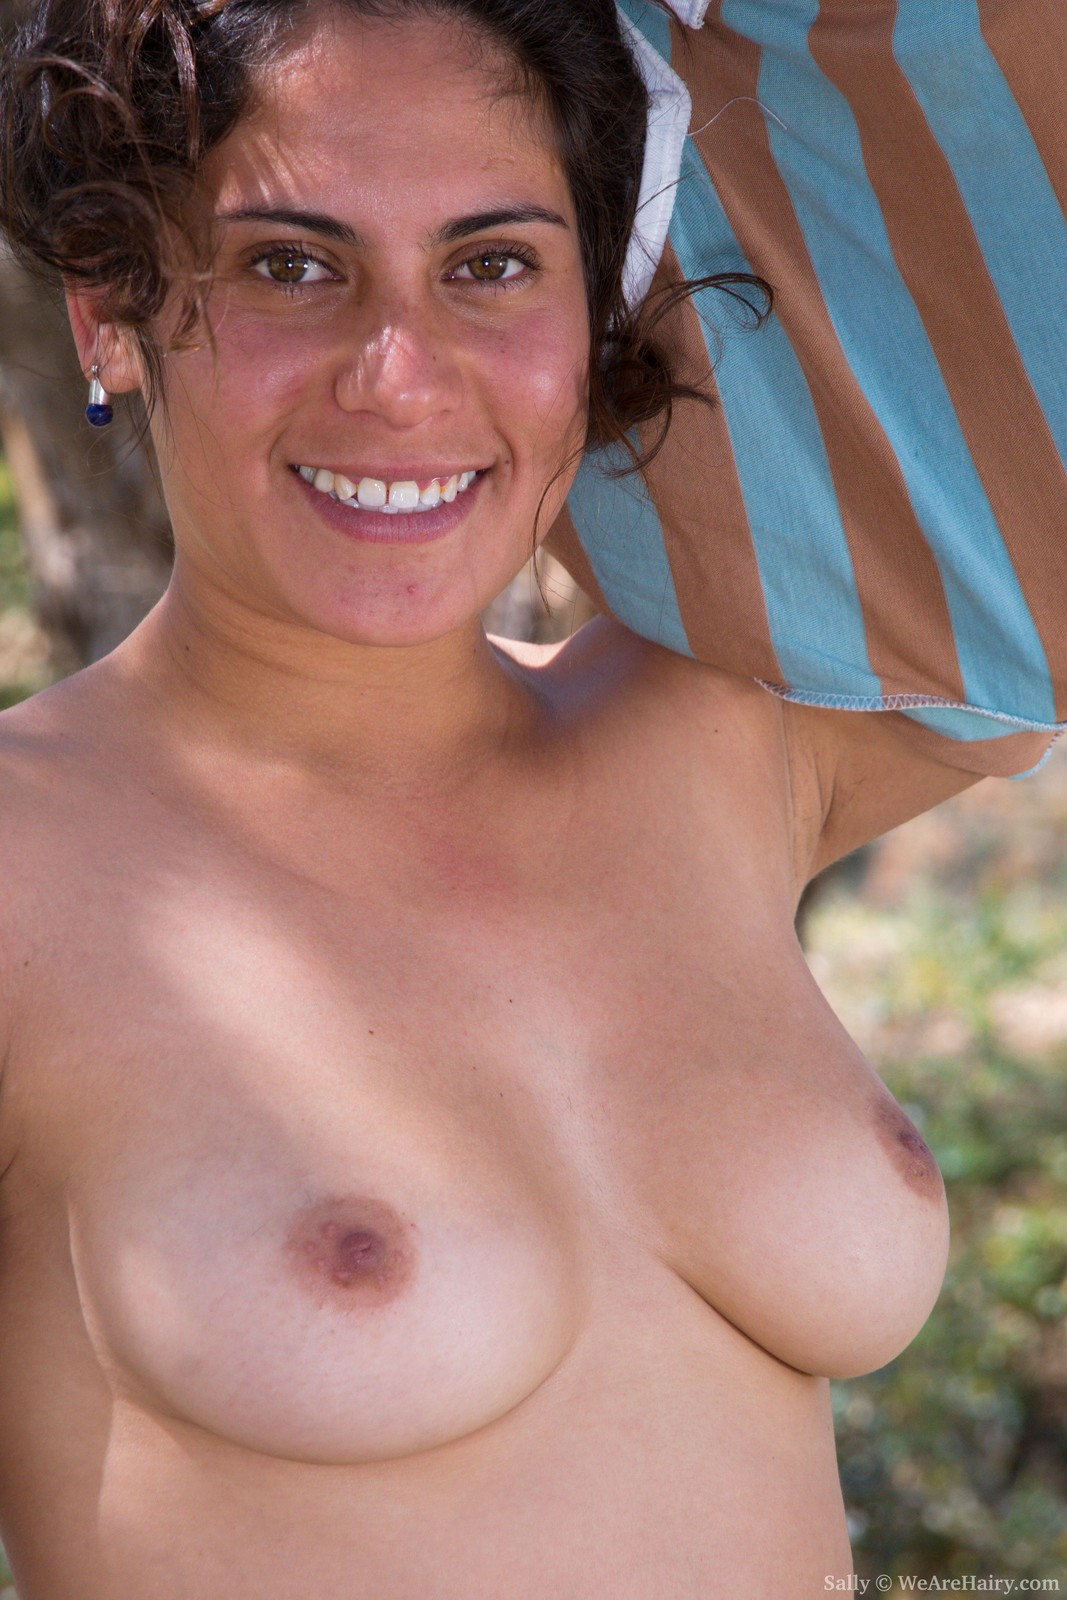 sally-is-outdoors-enjoying-the-sun-and-wants-to-get-some-sun-on-her-naked-body.-she-strips-naked-and-shows-off-her-36c-breasts-and-hairy-pussy.-her-body-is-sexy-outside-and-her-bush-is-so-beautiful.2.jpg